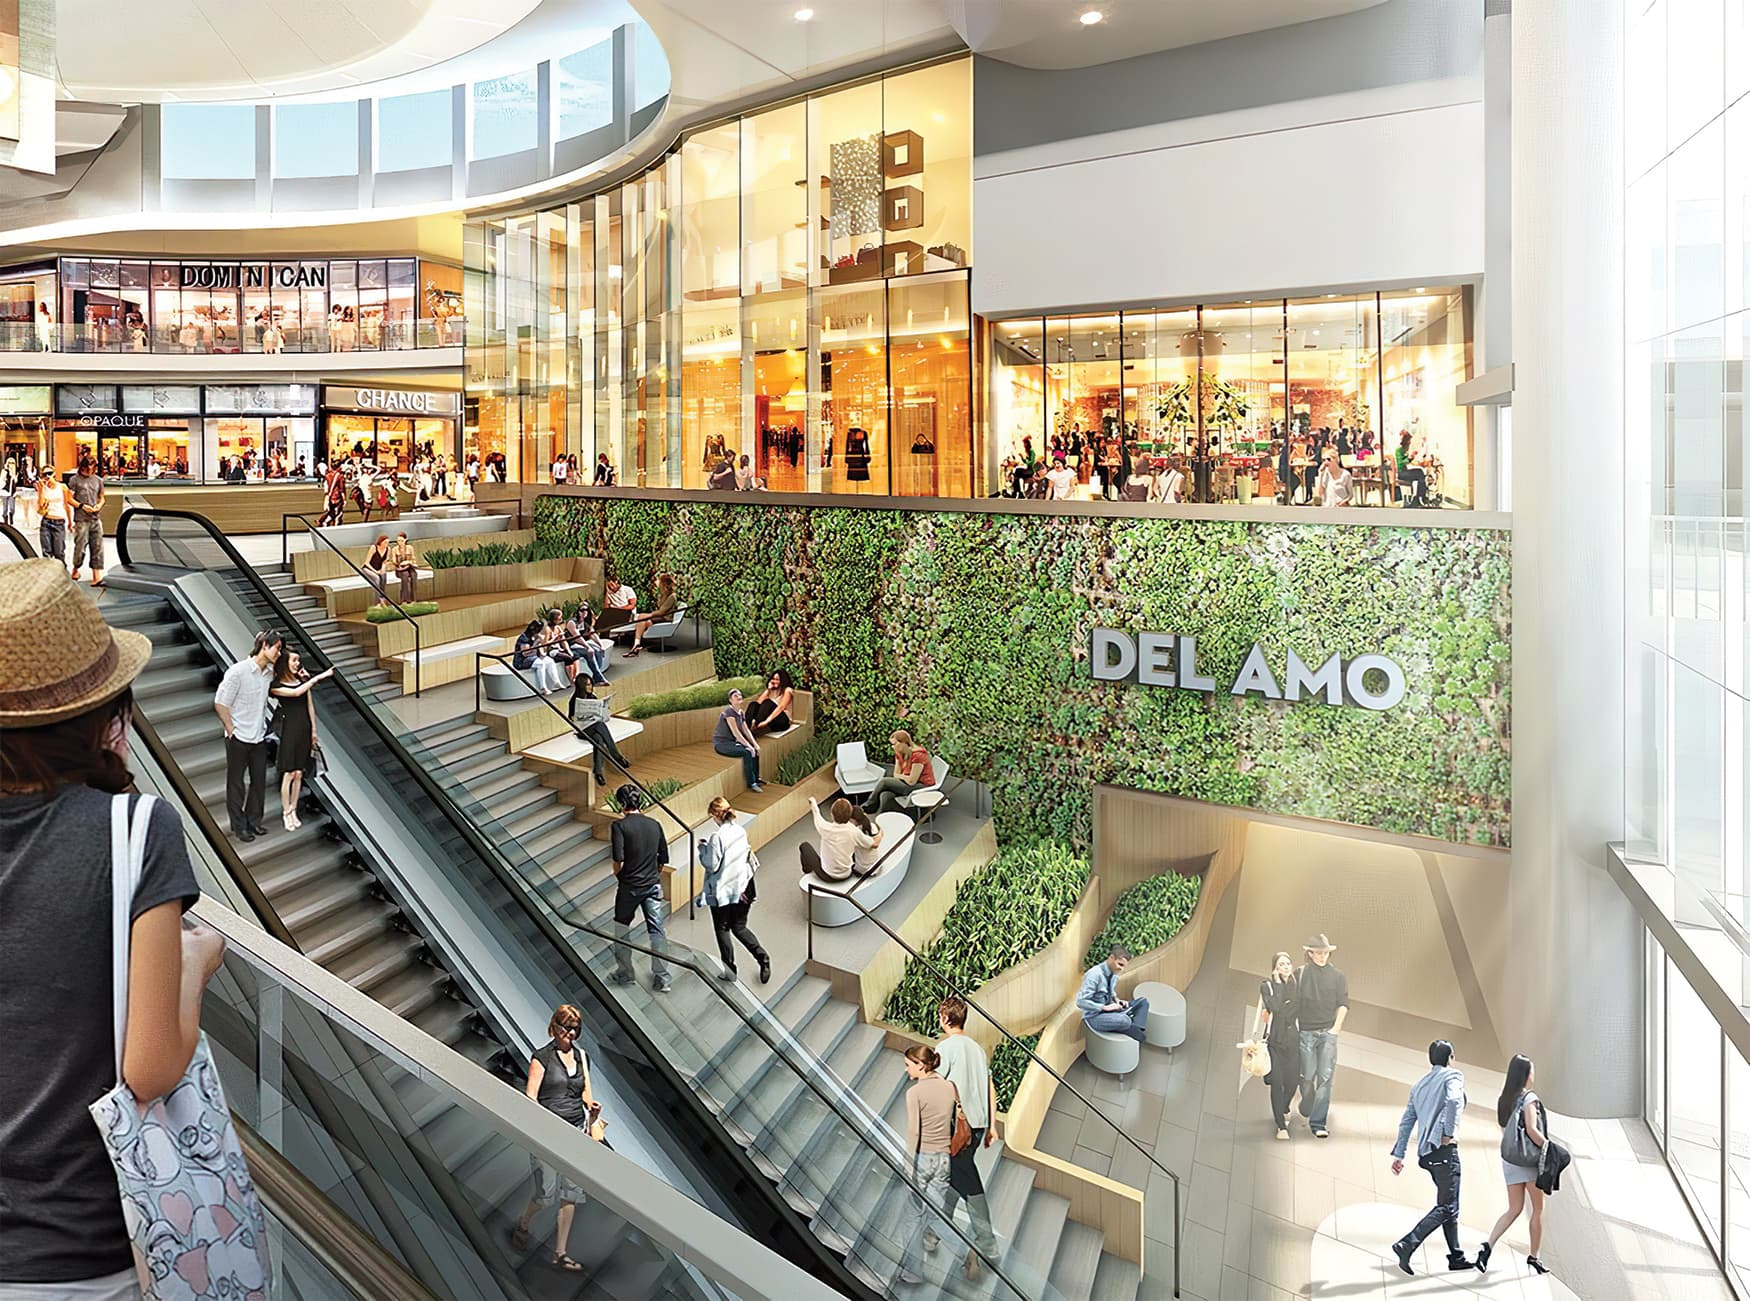 Del Amo Fashion Center located in Torrance, California. Project identity integrated into living wall.